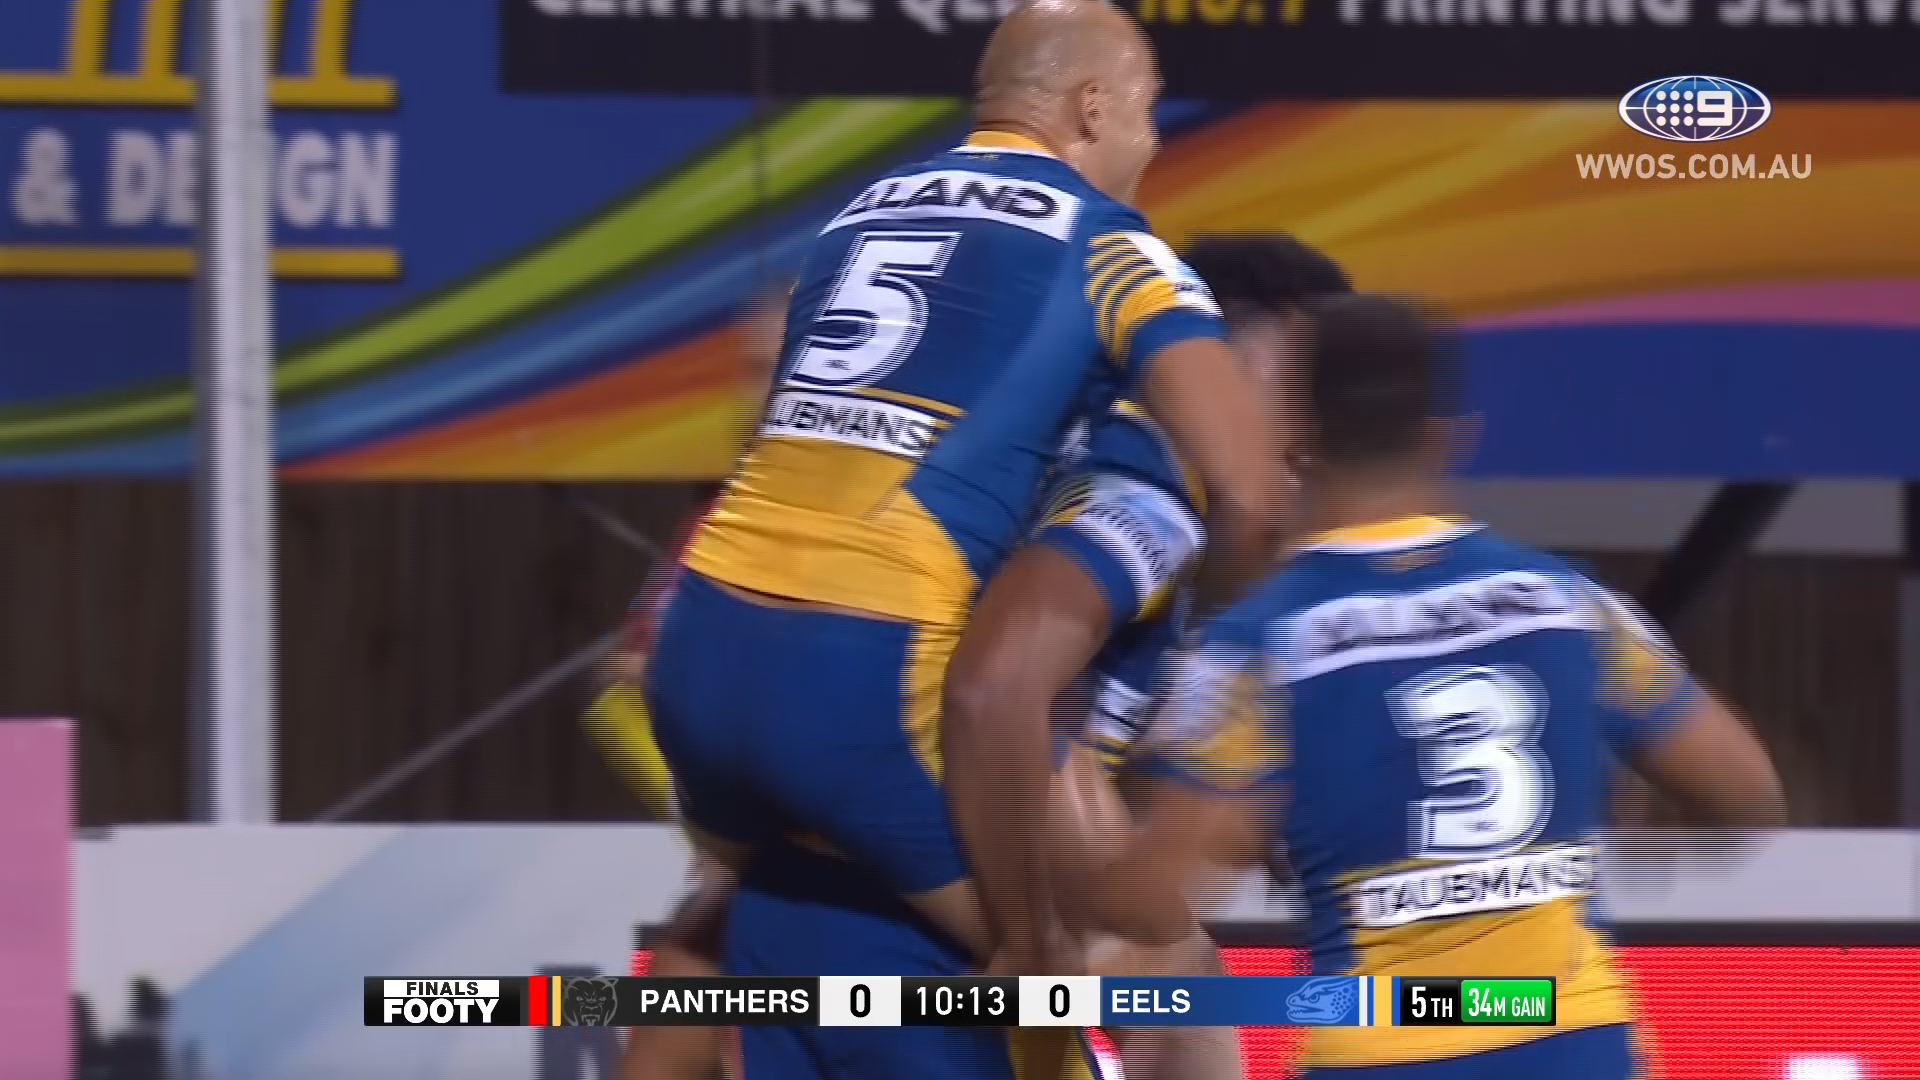 NRL Highlights: The Panthers edge out the Eels in a low scoring thriller - Semi Finals